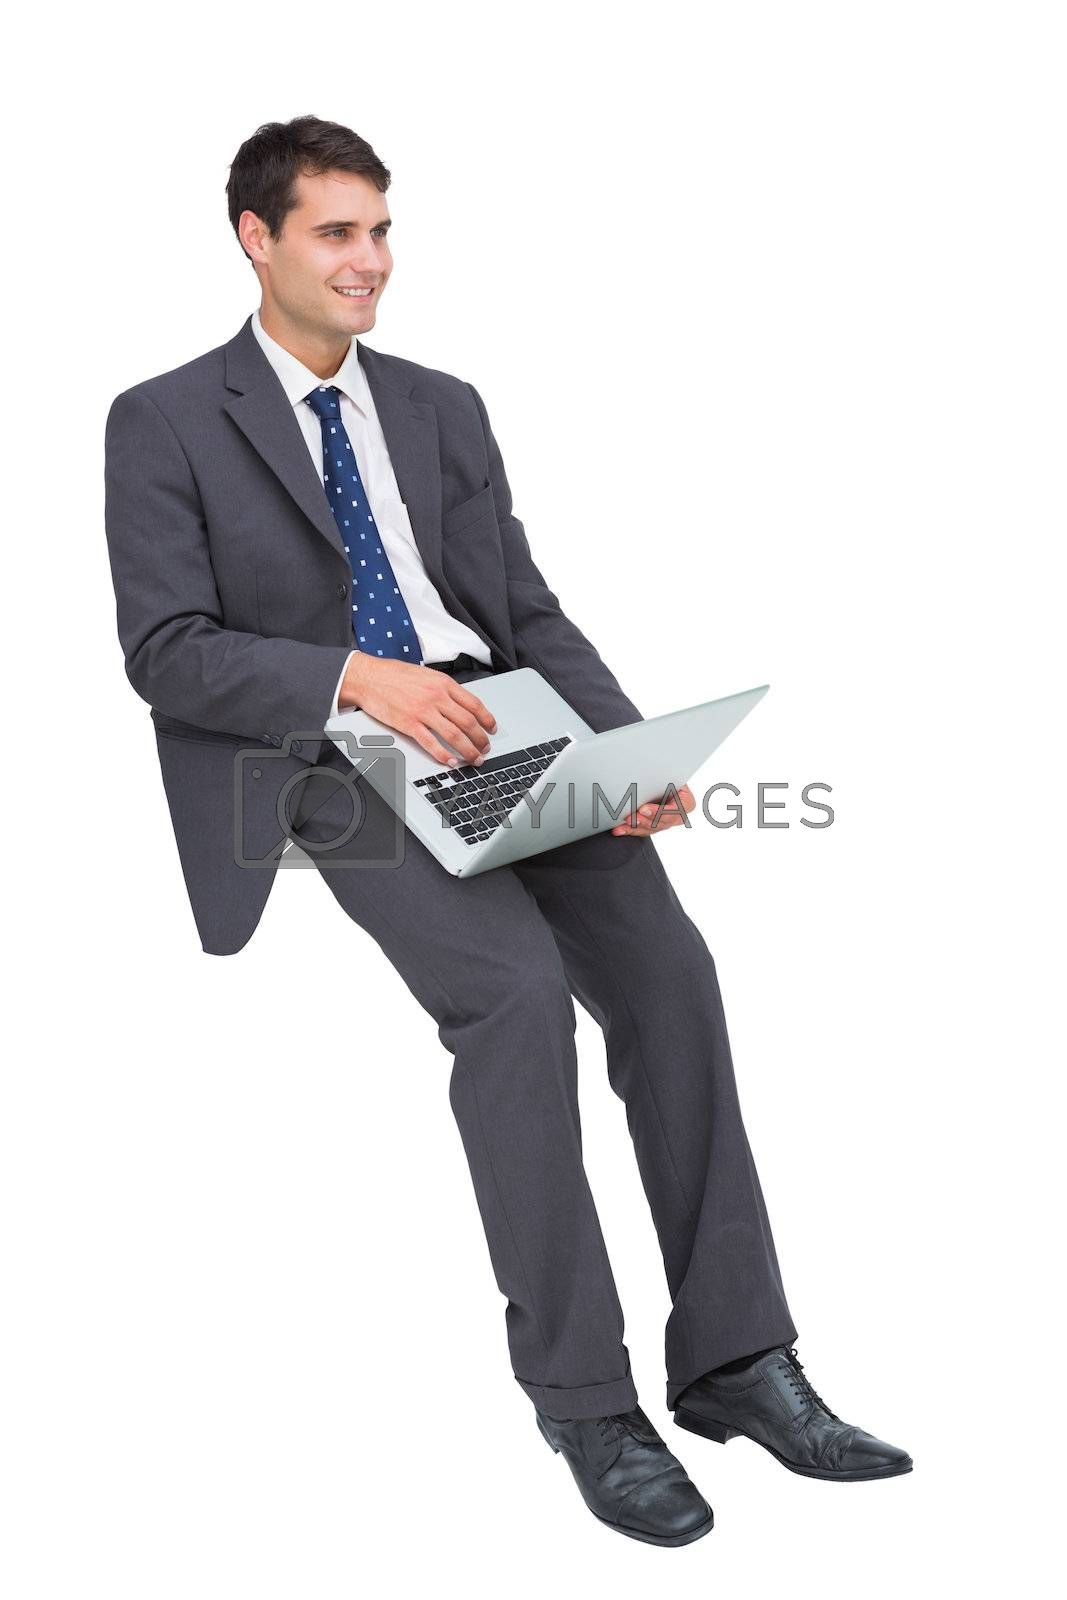 Smiling businessman sitting using a laptop  by Wavebreakmedia